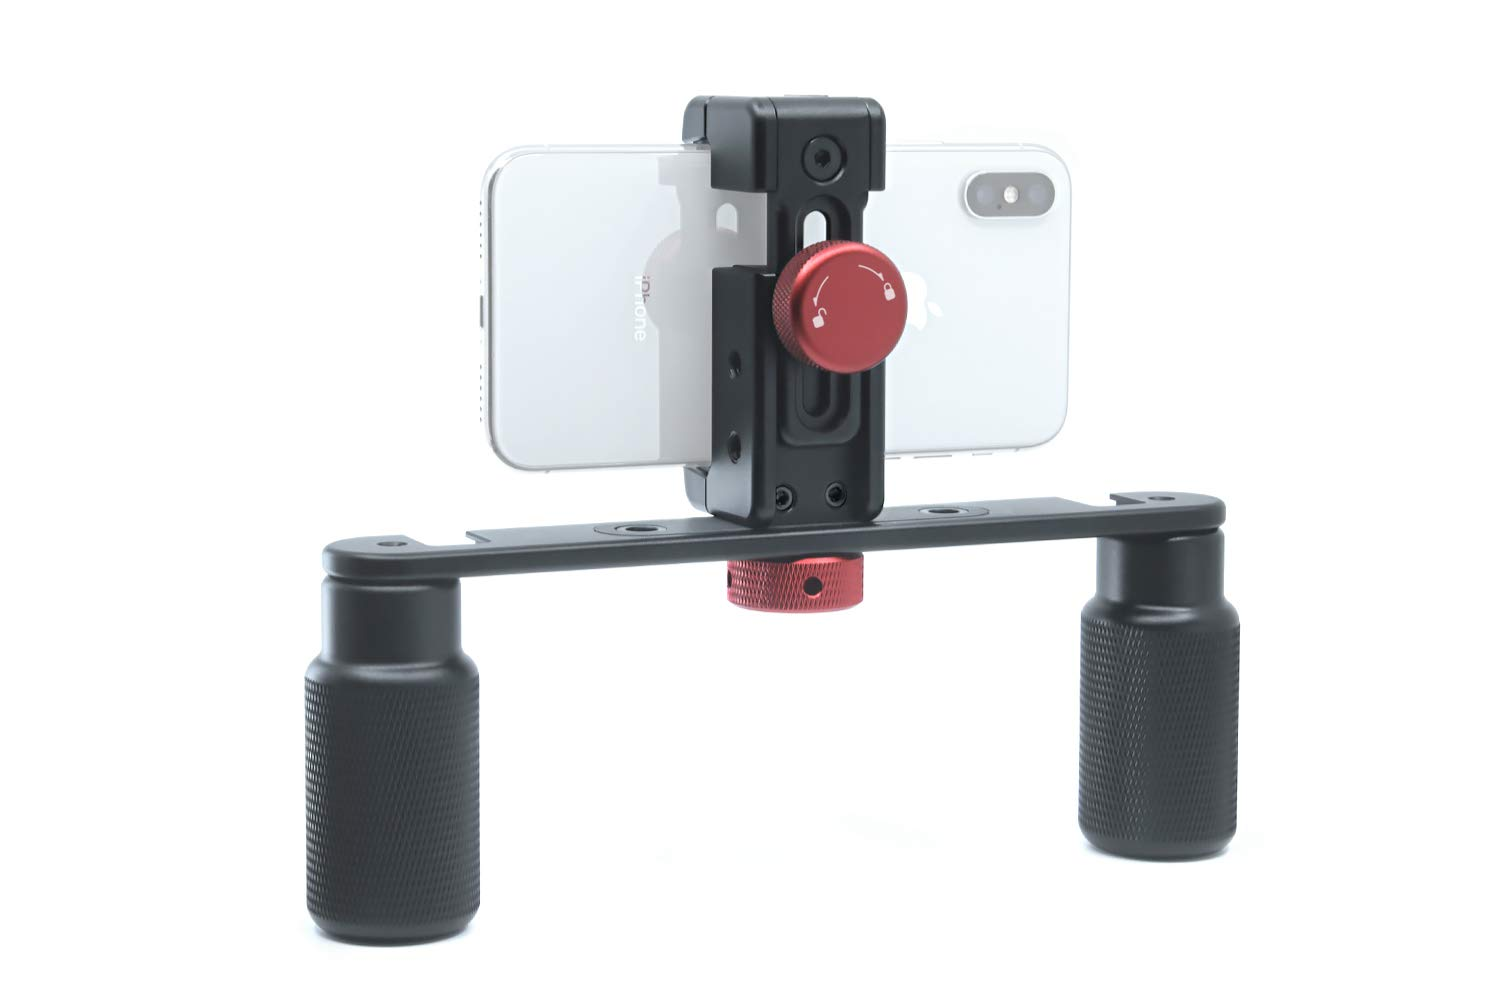 Beastclamp Rig - Universal Smartphone clamp, Tripod Mount, Professional rig from Beastgrip by Beastgrip